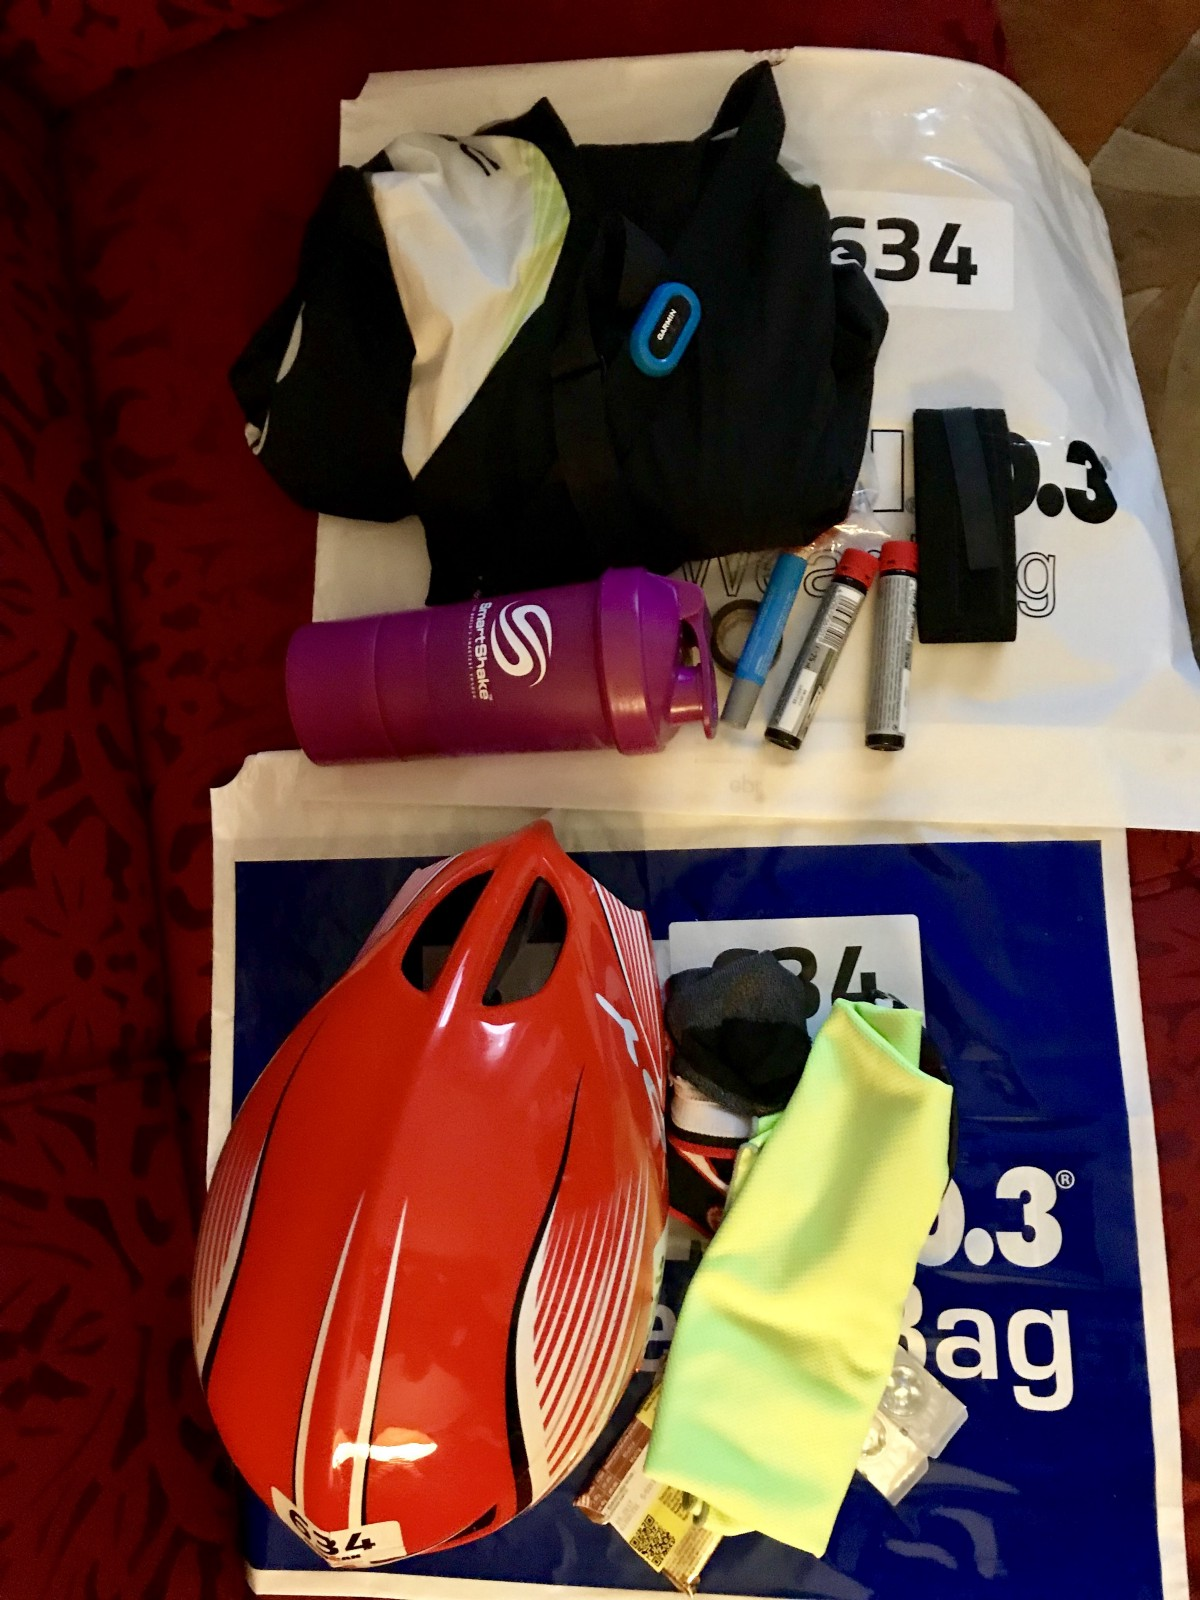 Ironman Checklist Packing Race Day Instarea Life Luggage Tag Head Place The Things On Top Of Your Bag So You Know What Belongs Where And Can Check Easily If Nothing Is Missing